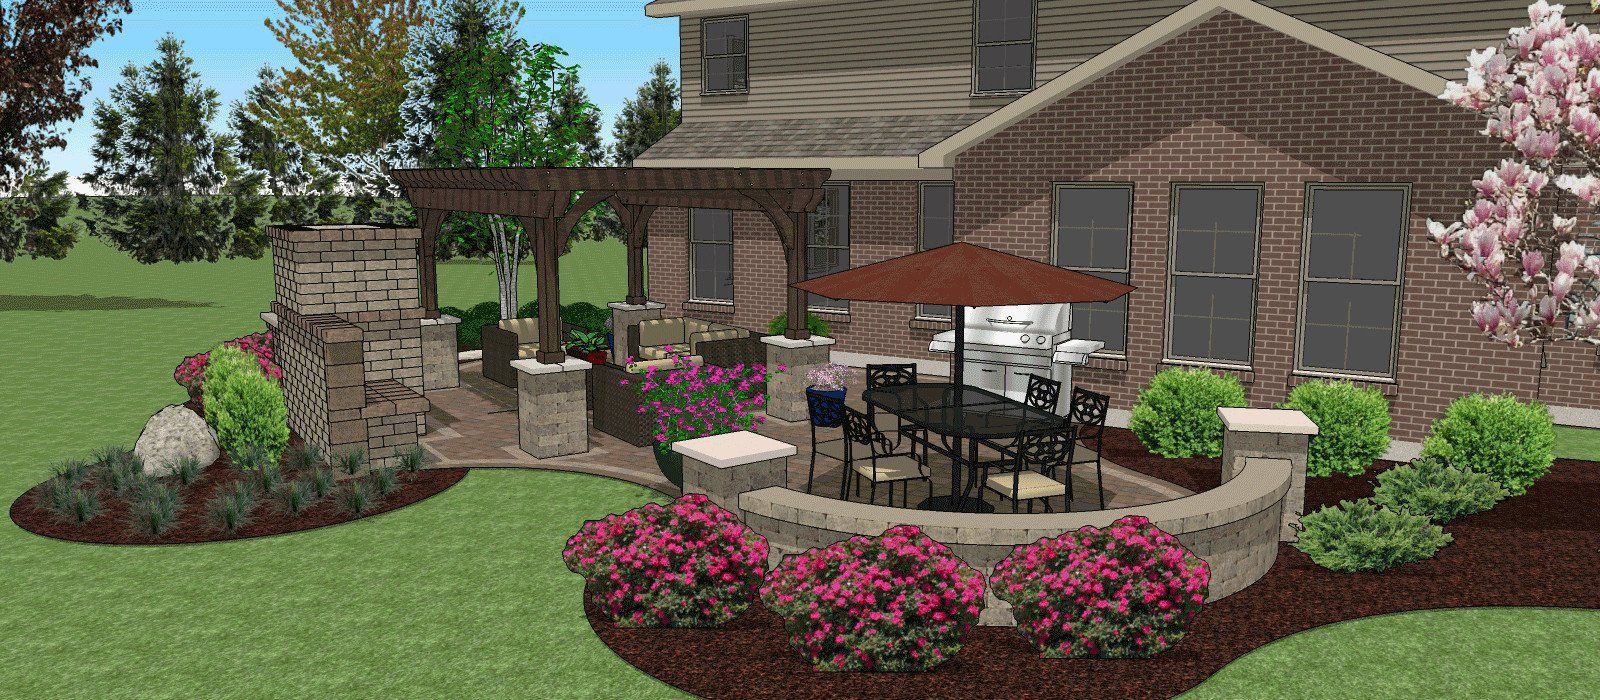 Patio Layout Designs Downloadable Patio Plans Patio Ideas Patio Layout Small Patio